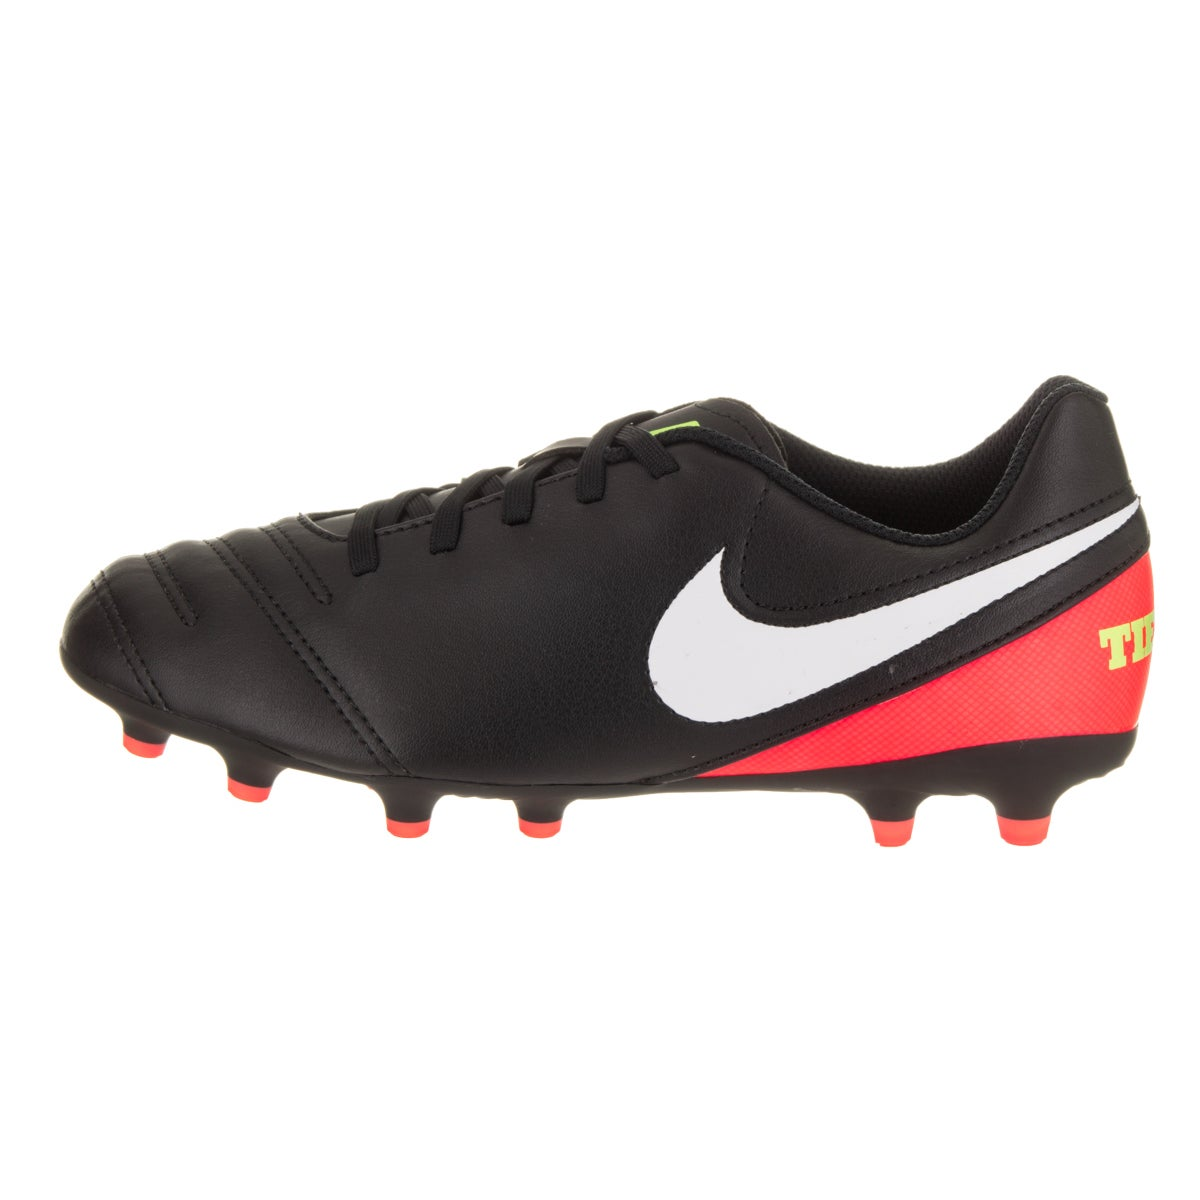 52f67c5b5 Shop Nike Kids JR Tiempo Rio III FG Soccer Cleat - Free Shipping On Orders  Over  45 - Overstock - 14428732